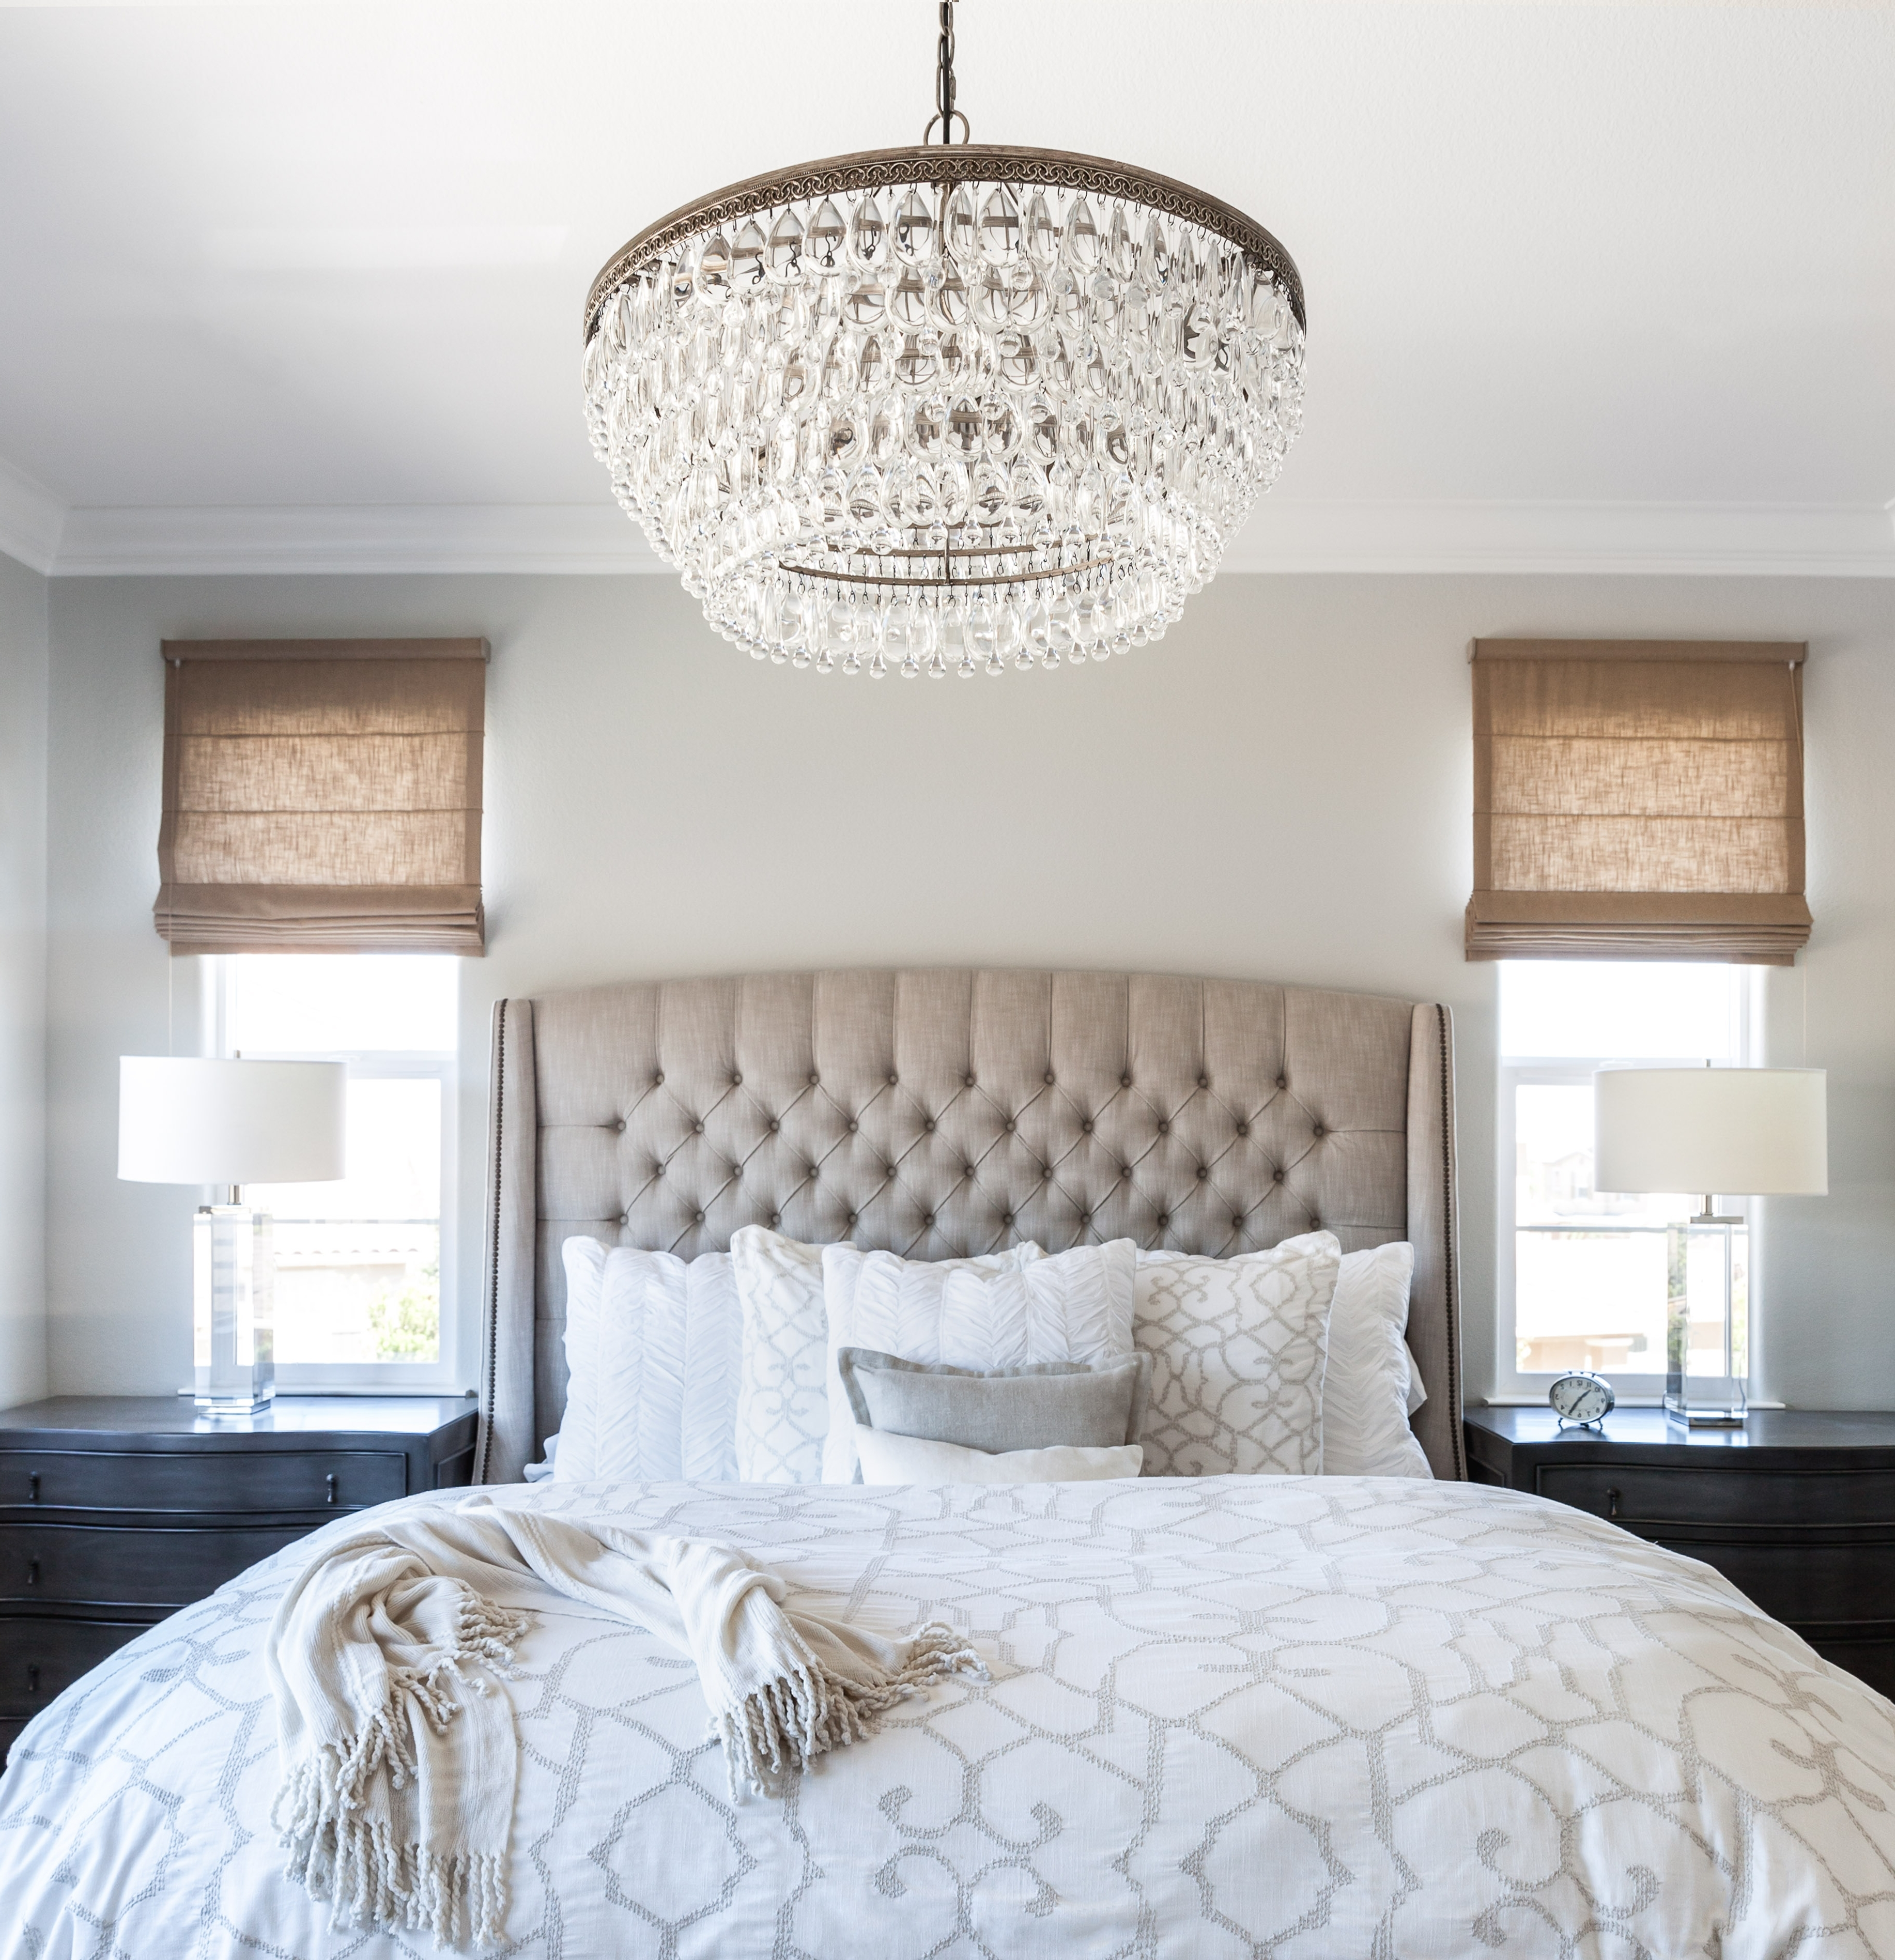 Chandeliers Design : Amazing Small Chandeliers For Bedroom Regarding Most Recently Released Small Glass Chandeliers (View 6 of 15)